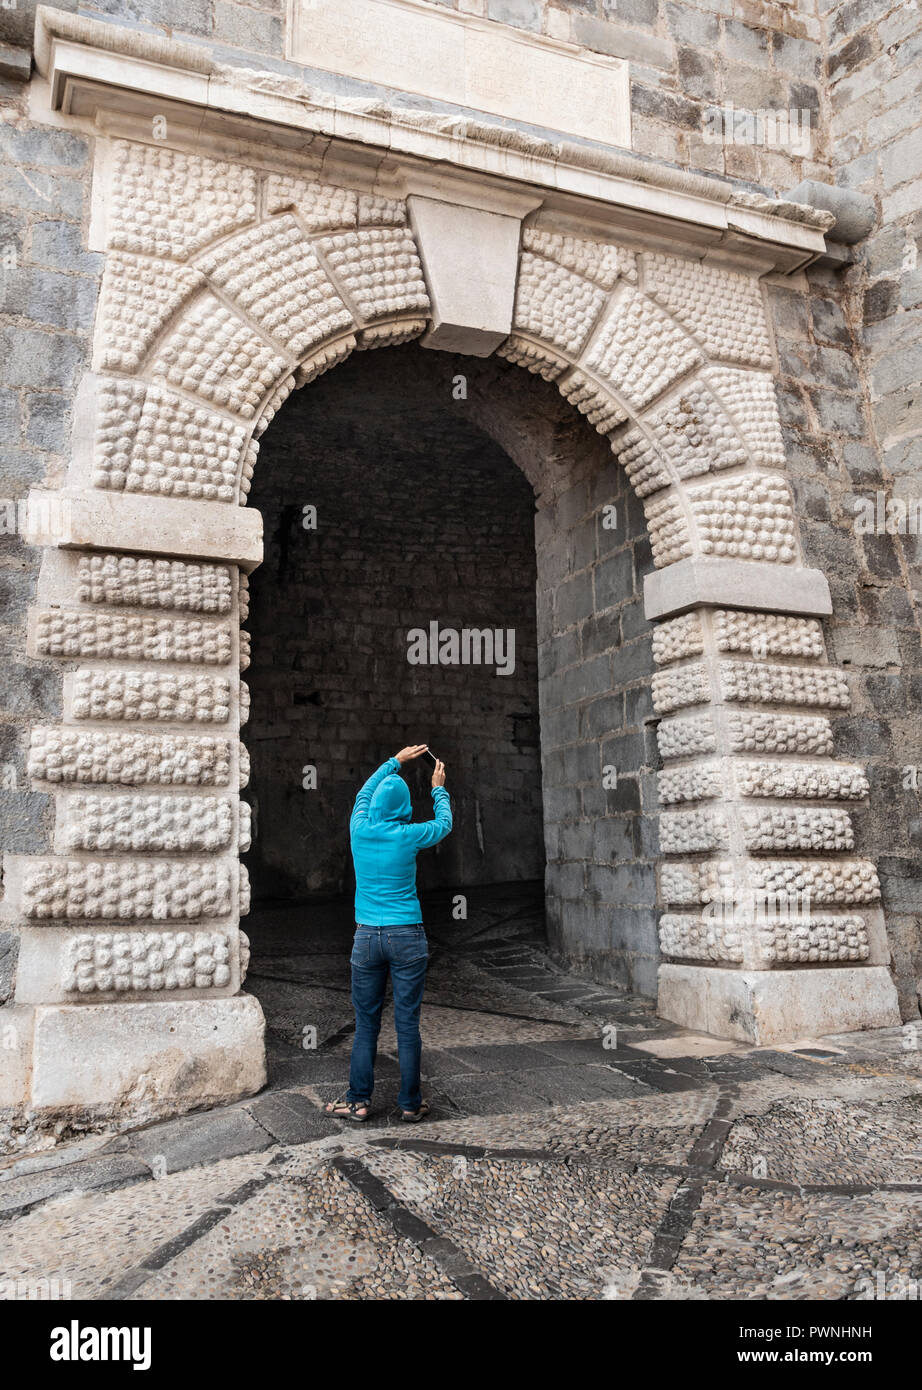 Portal Fosc in Peñíscola, Spain, one of the filming locations for Game of Thrones (season six) - Stock Image